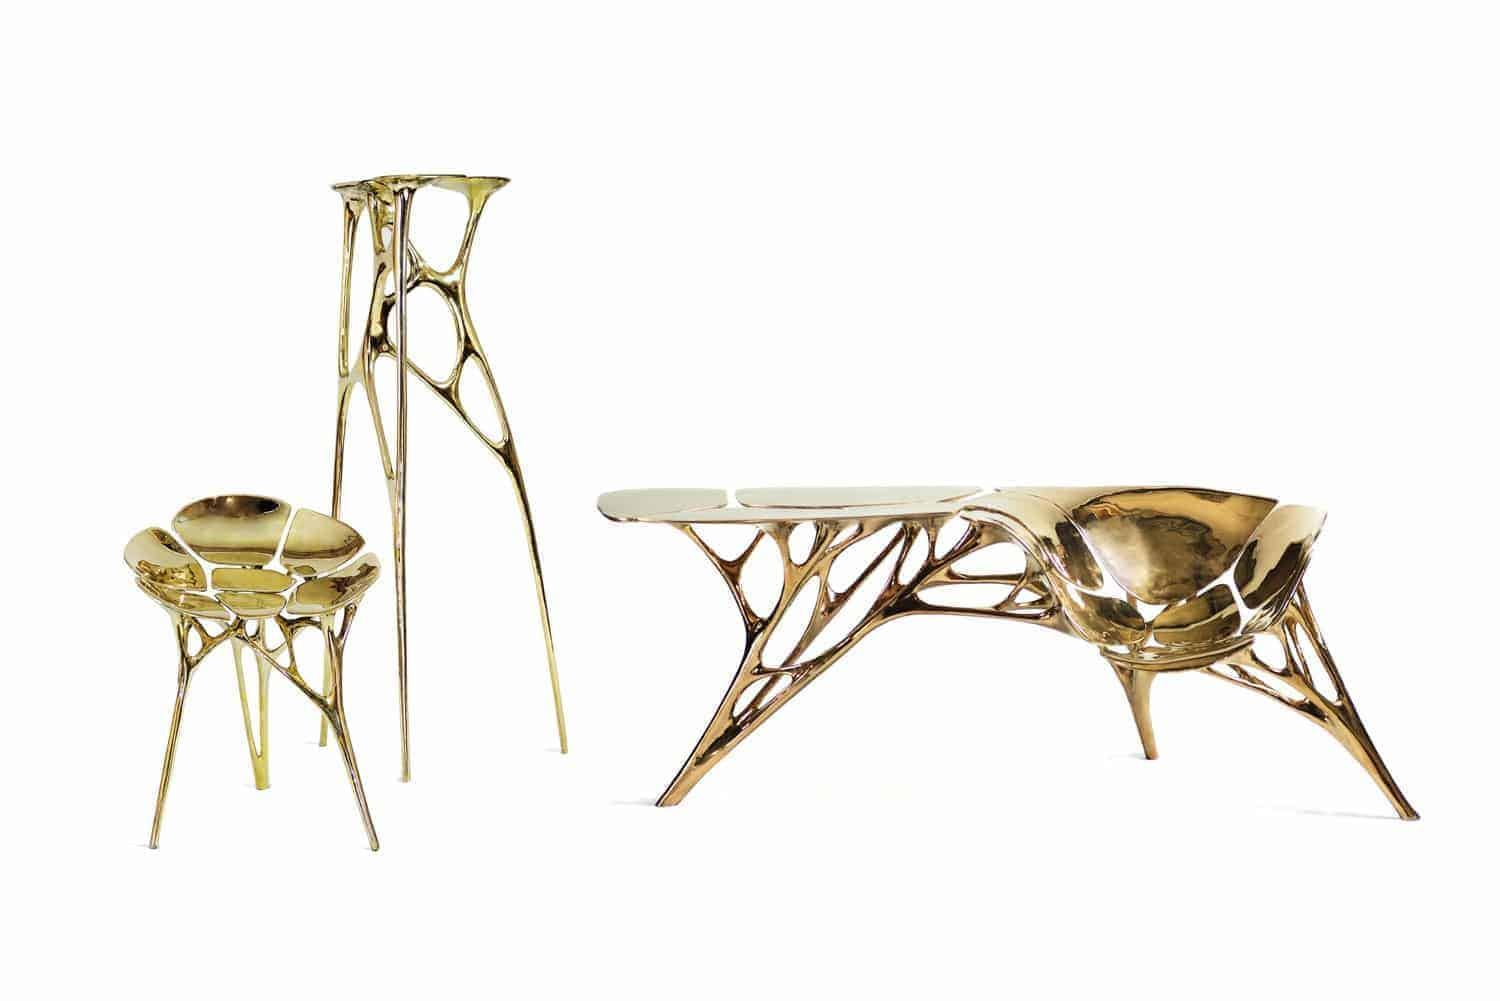 Links: Lotus Stool (2015) Midden: Lotus High Side Table (2015) Rechts: Lotus Console Table (2016)